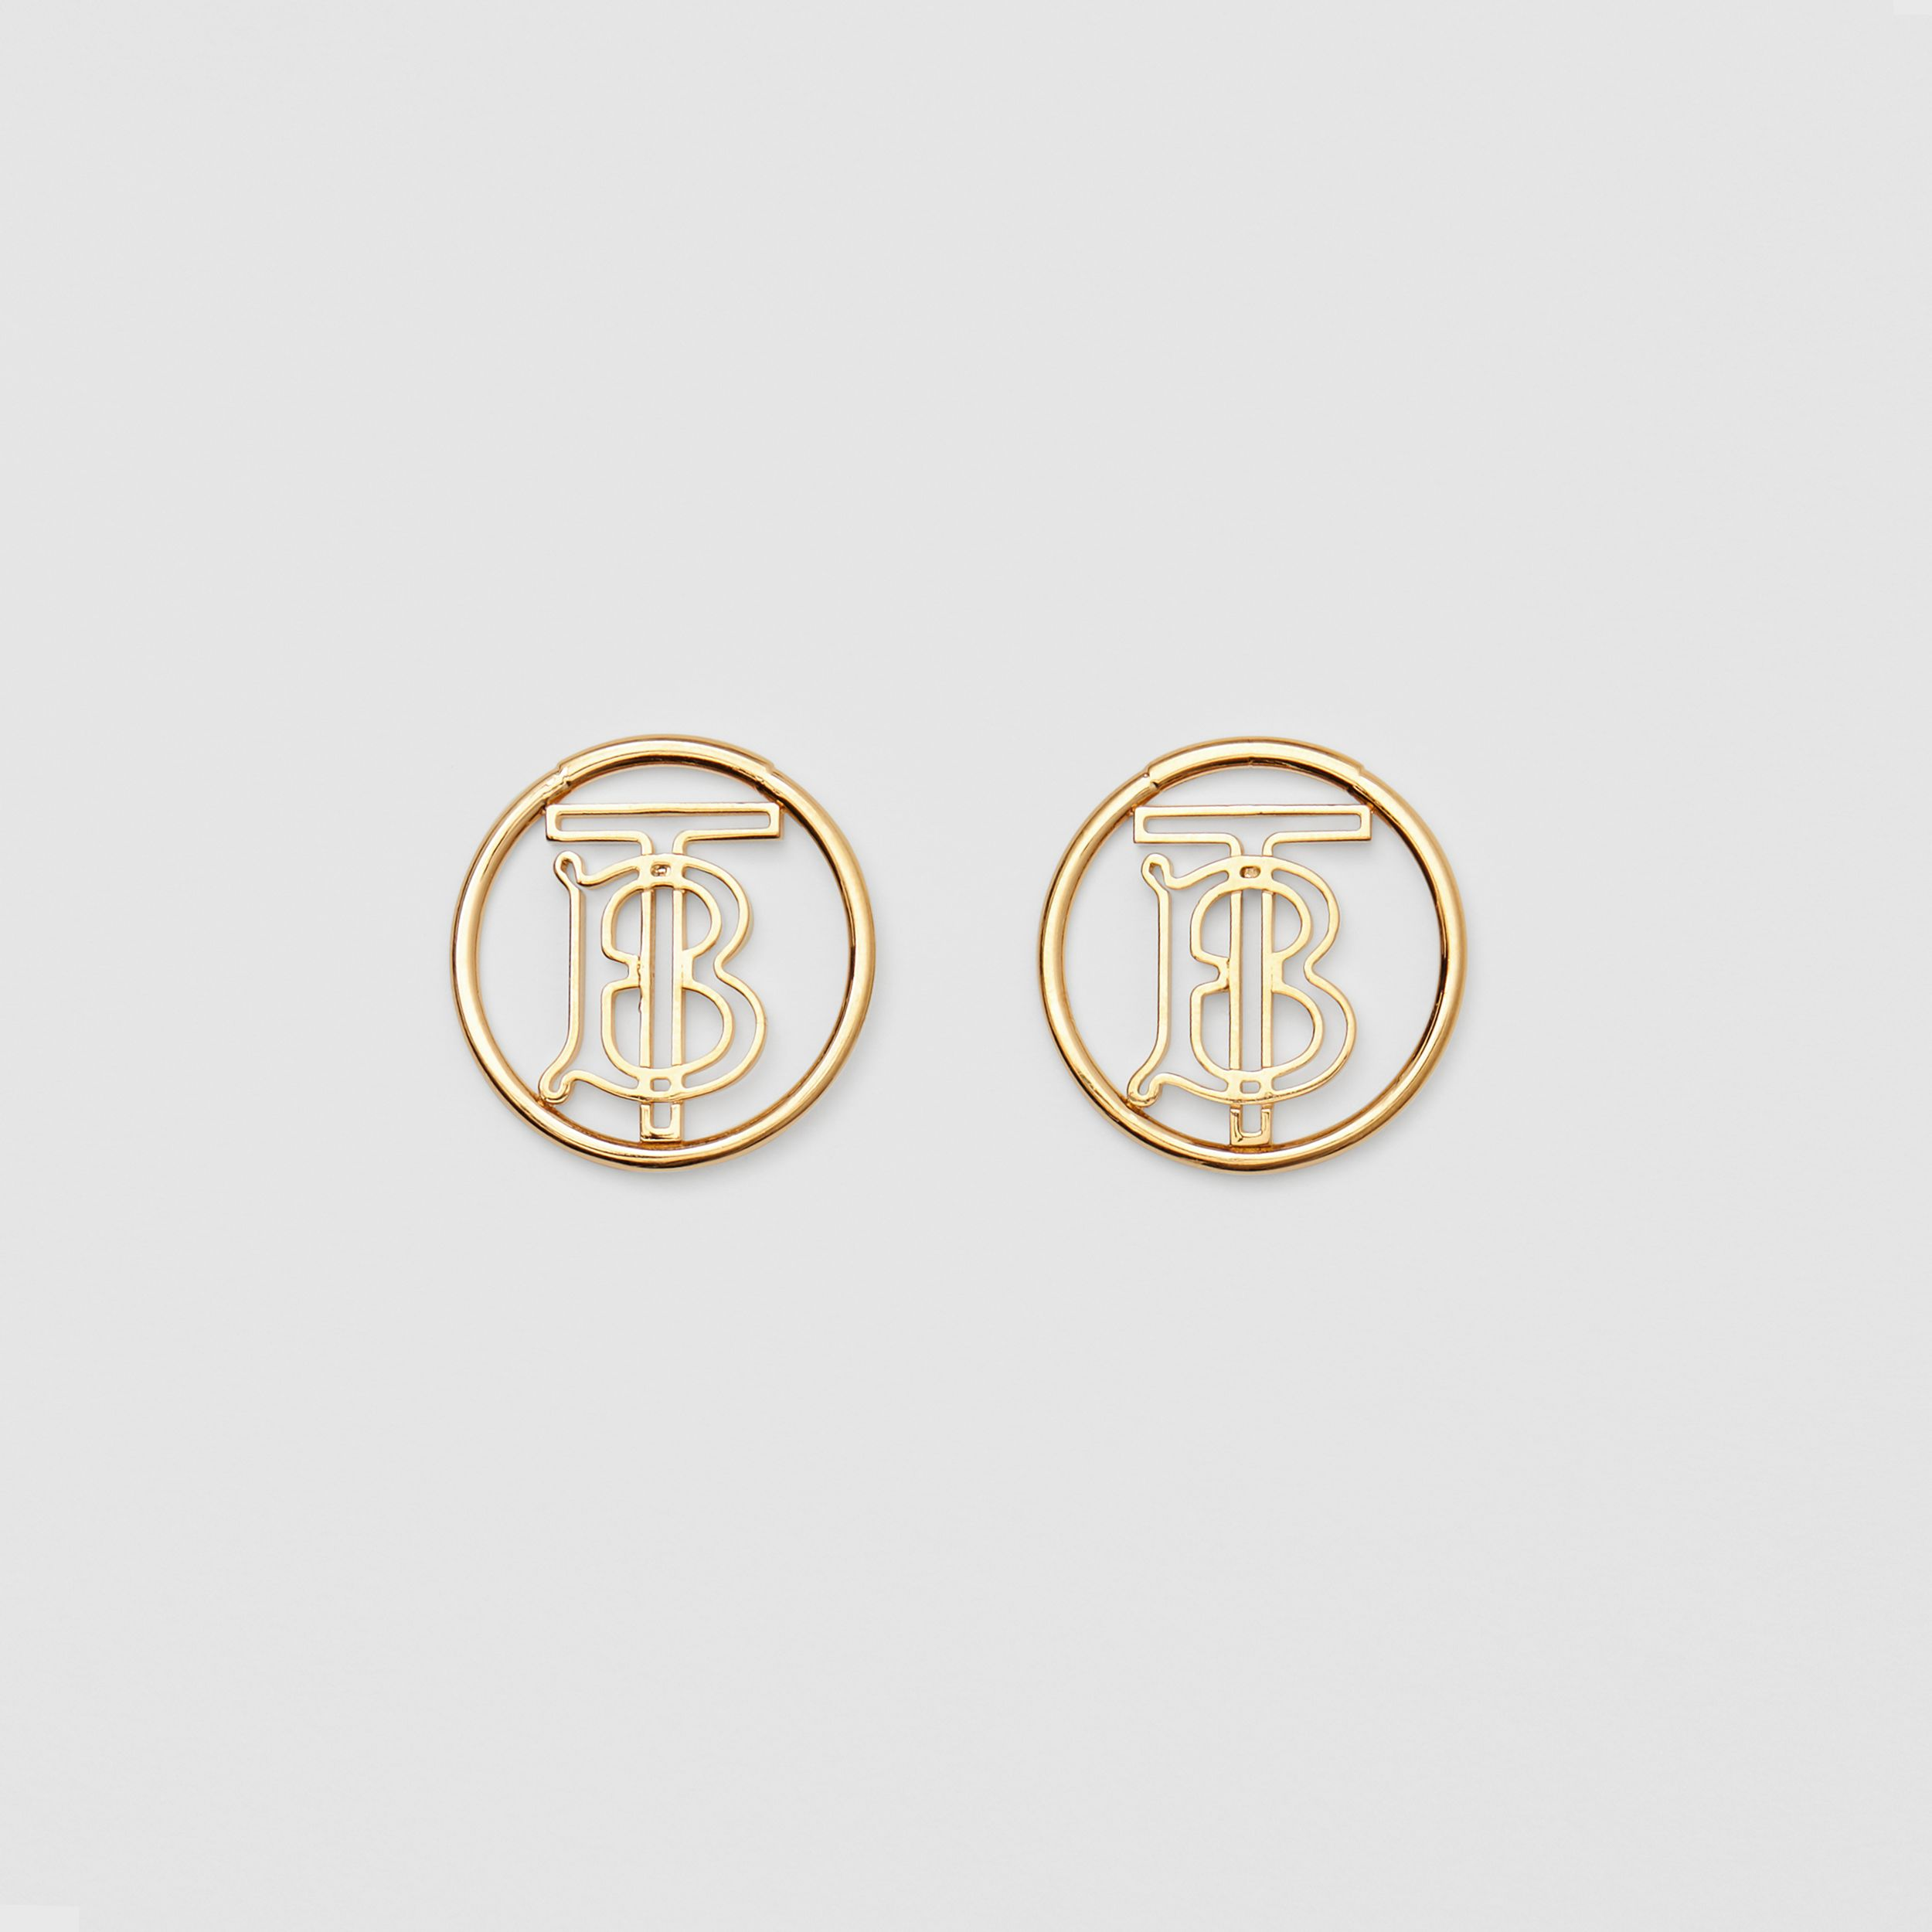 Gold-plated Monogram Motif Earrings in Light - Women | Burberry - 1